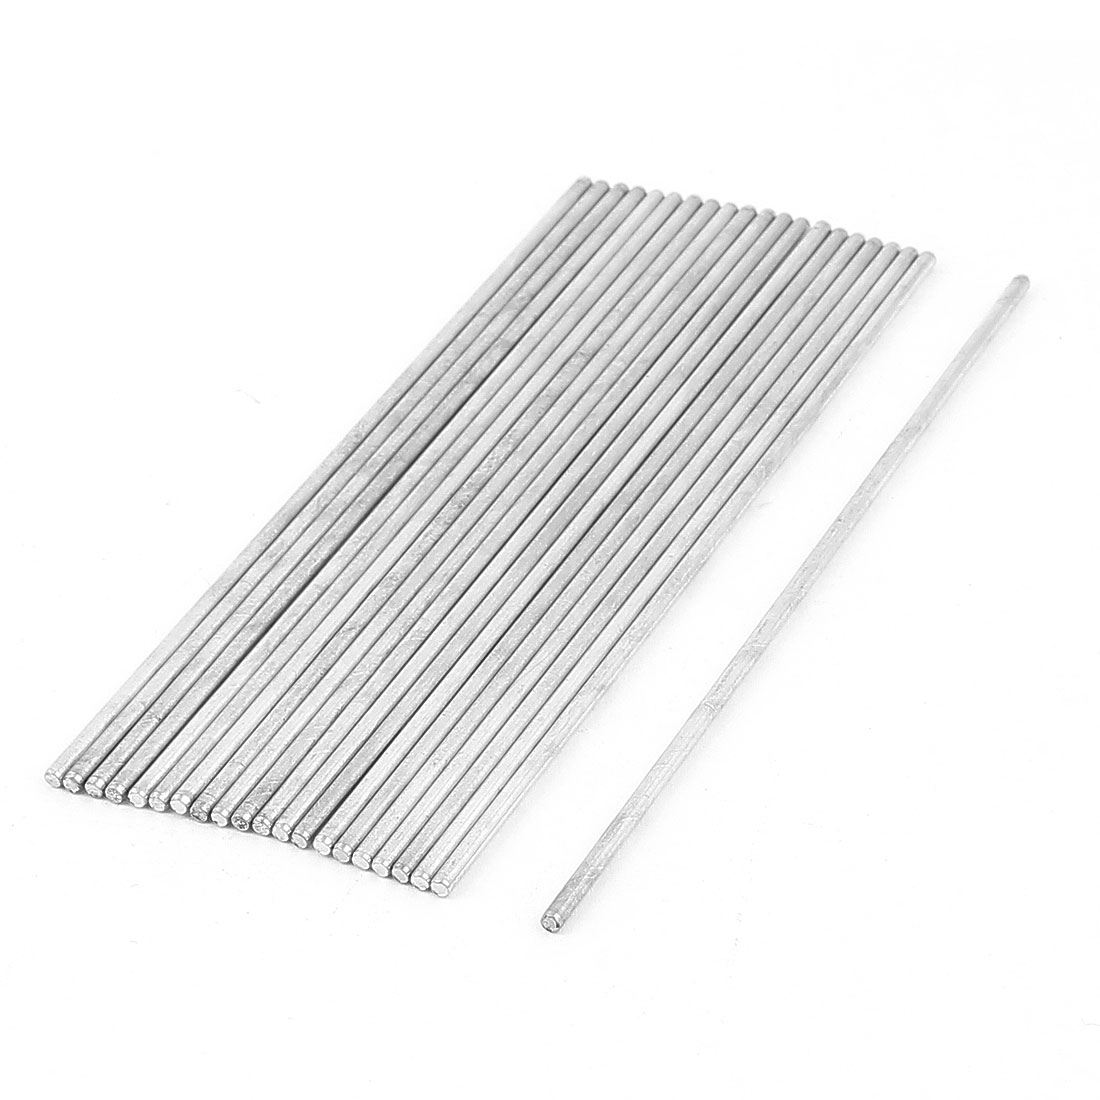 20 Pcs 2.5mmx135mm Metal Solid Round Rod Bar for DIY RC Model Car